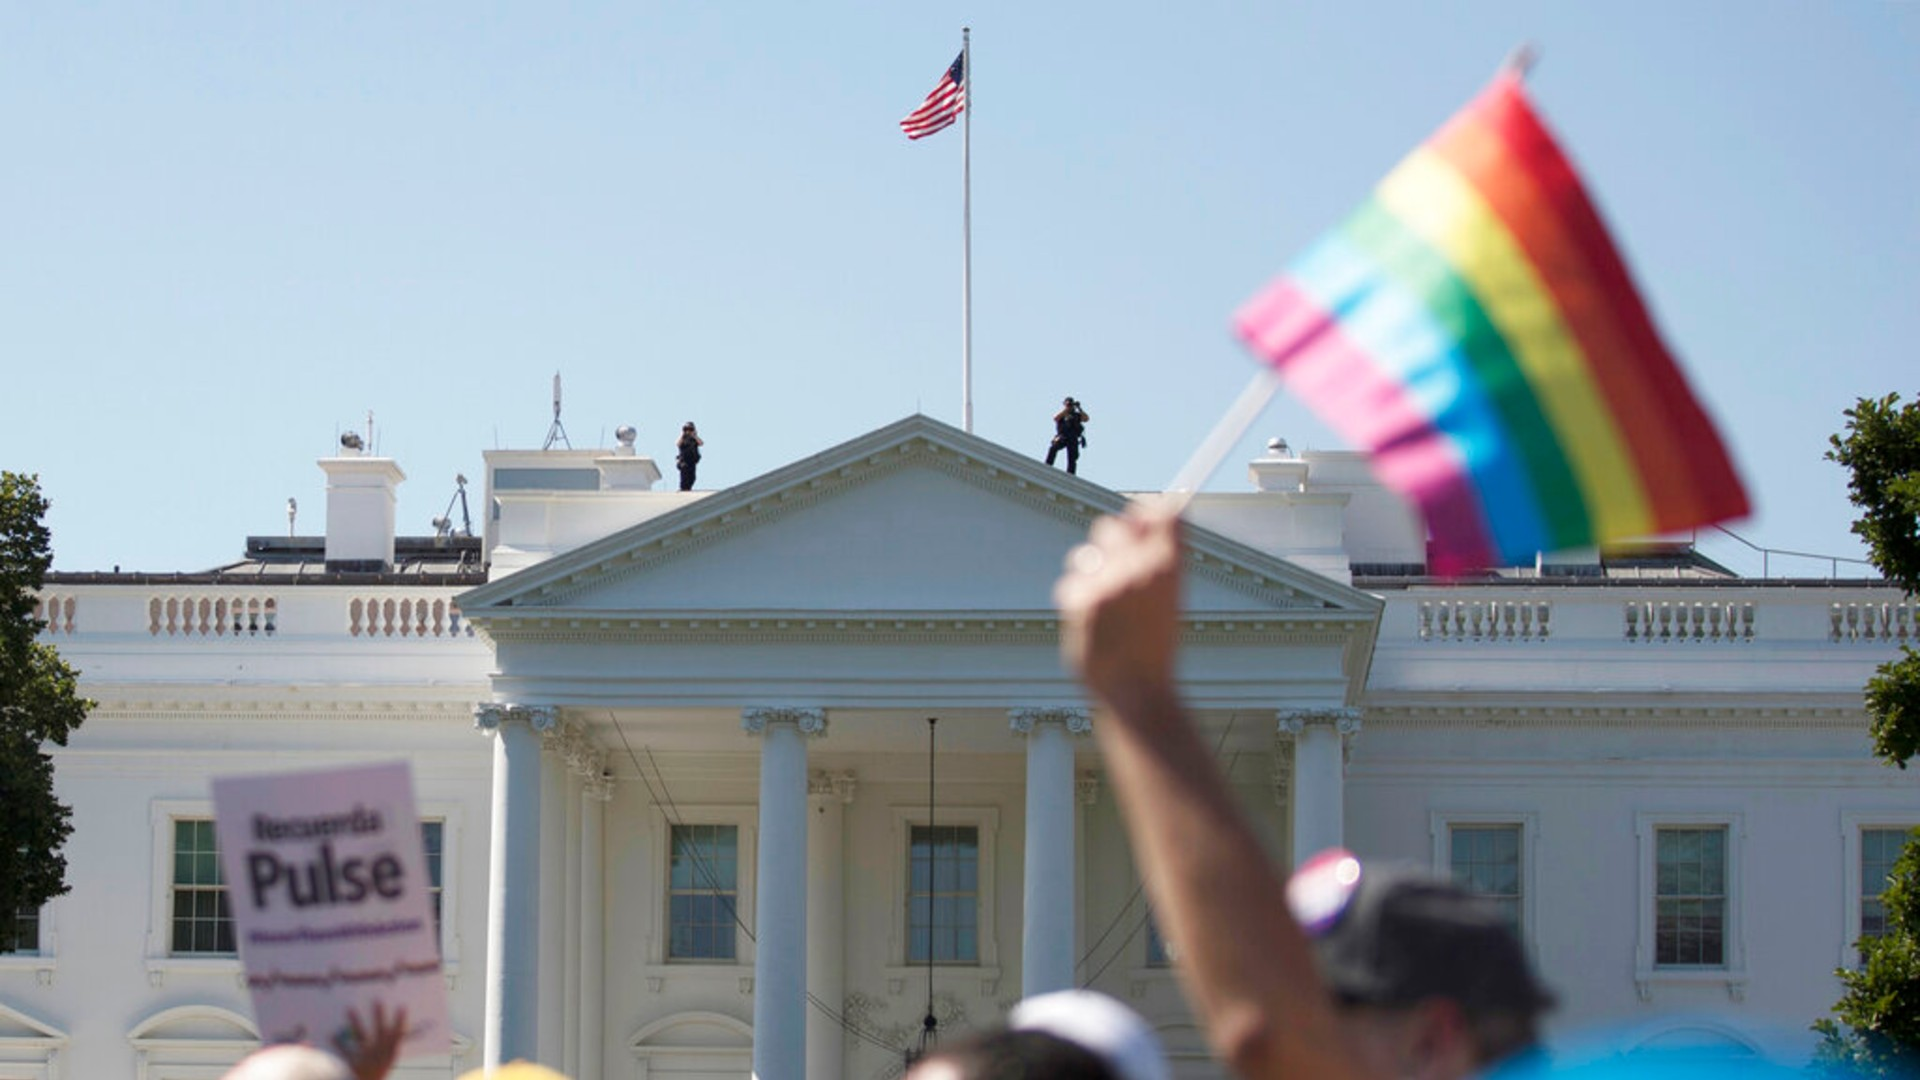 In this Sunday, June 11, 2017 file photo, Equality March for Unity and Pride participants march past the White House in Washington. (AP Photo/Carolyn Kaster)